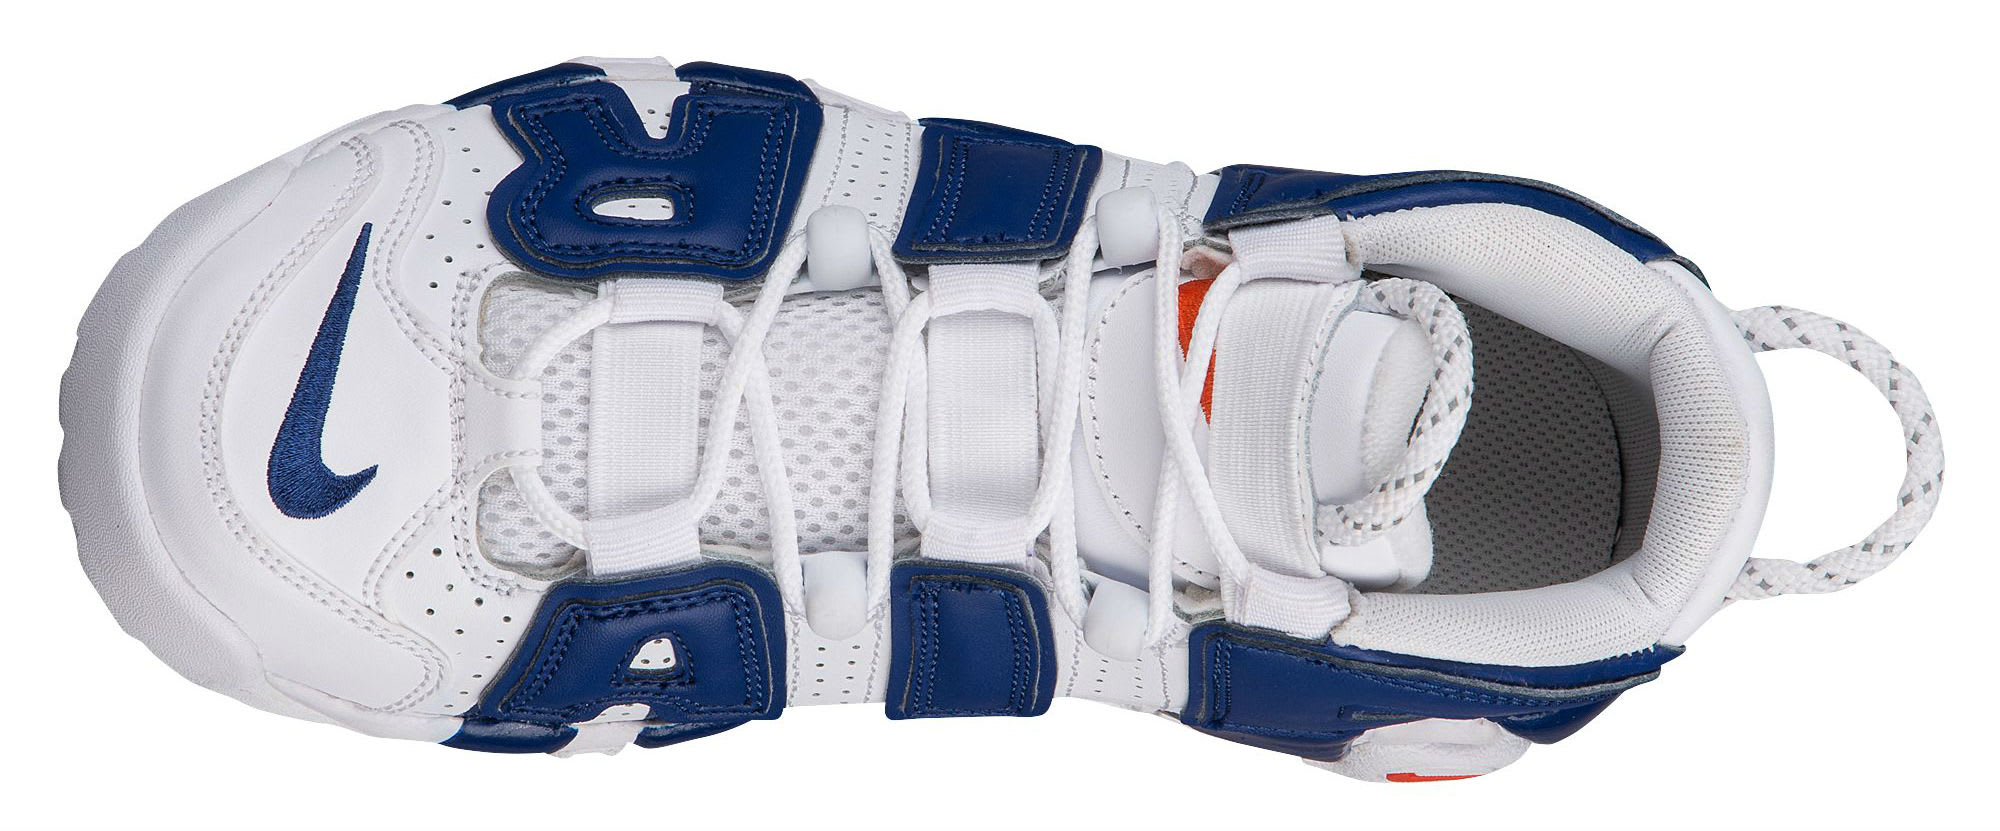 Nike Air More Uptempo Knicks Release Date Top